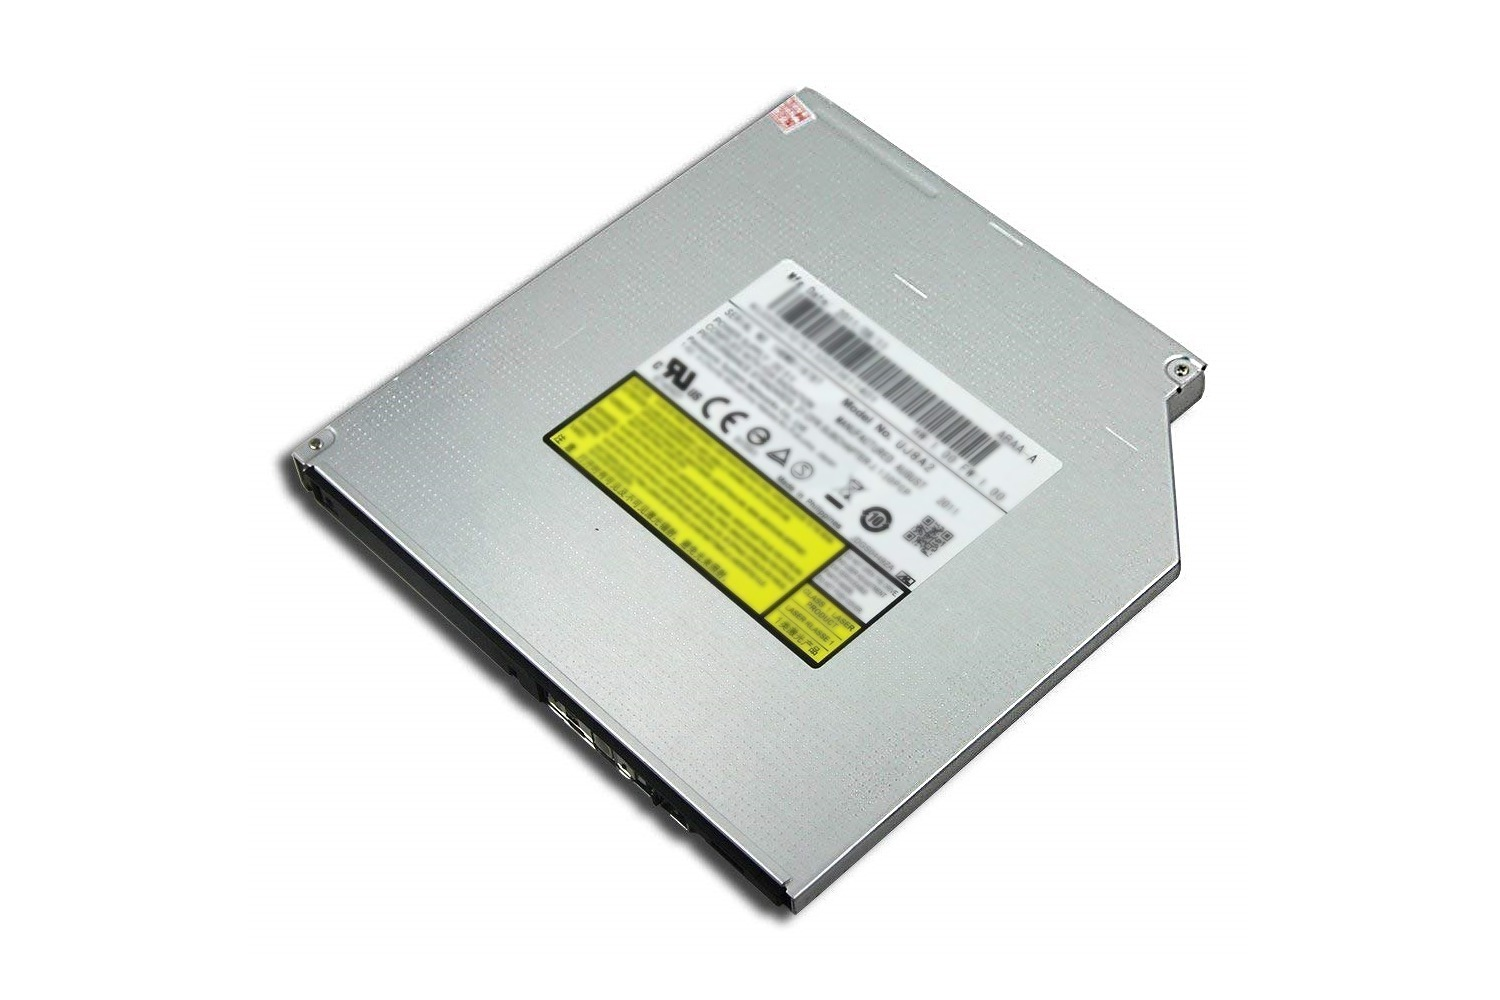 Panasonic Nagrywarka CD/DVD 9.5 mm SATA UJ8E2